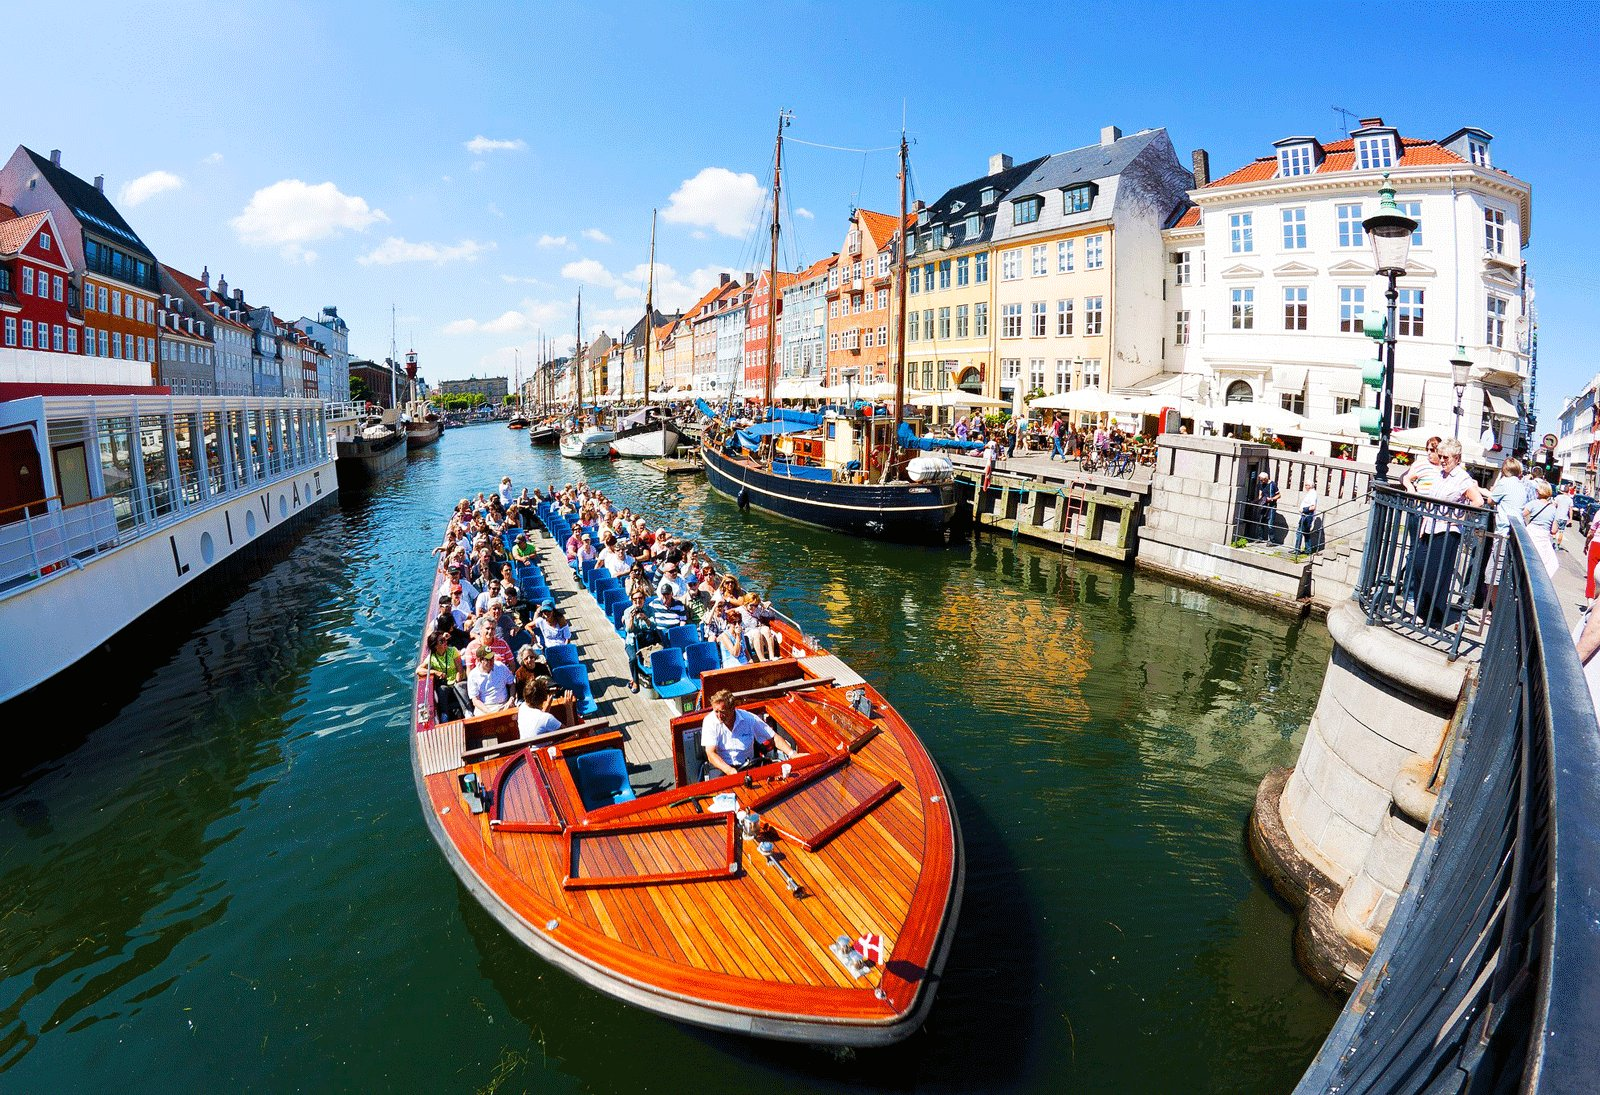 How to ride in a hop-on/hop-off boat in Copenhagen